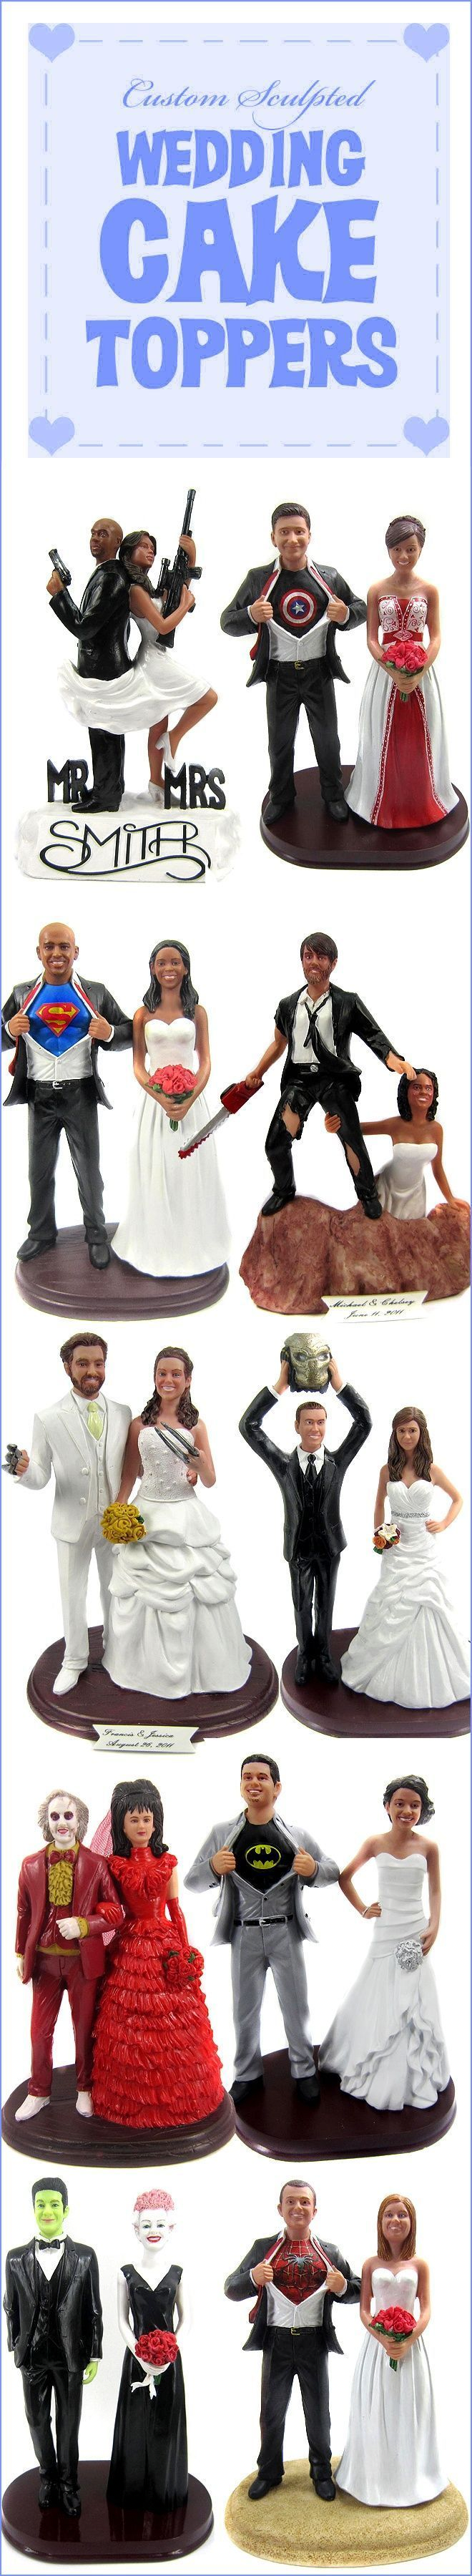 Best Custom Cake Toppers Ideas On Pinterest Where Is - 16 hilariously creative wedding cake toppers